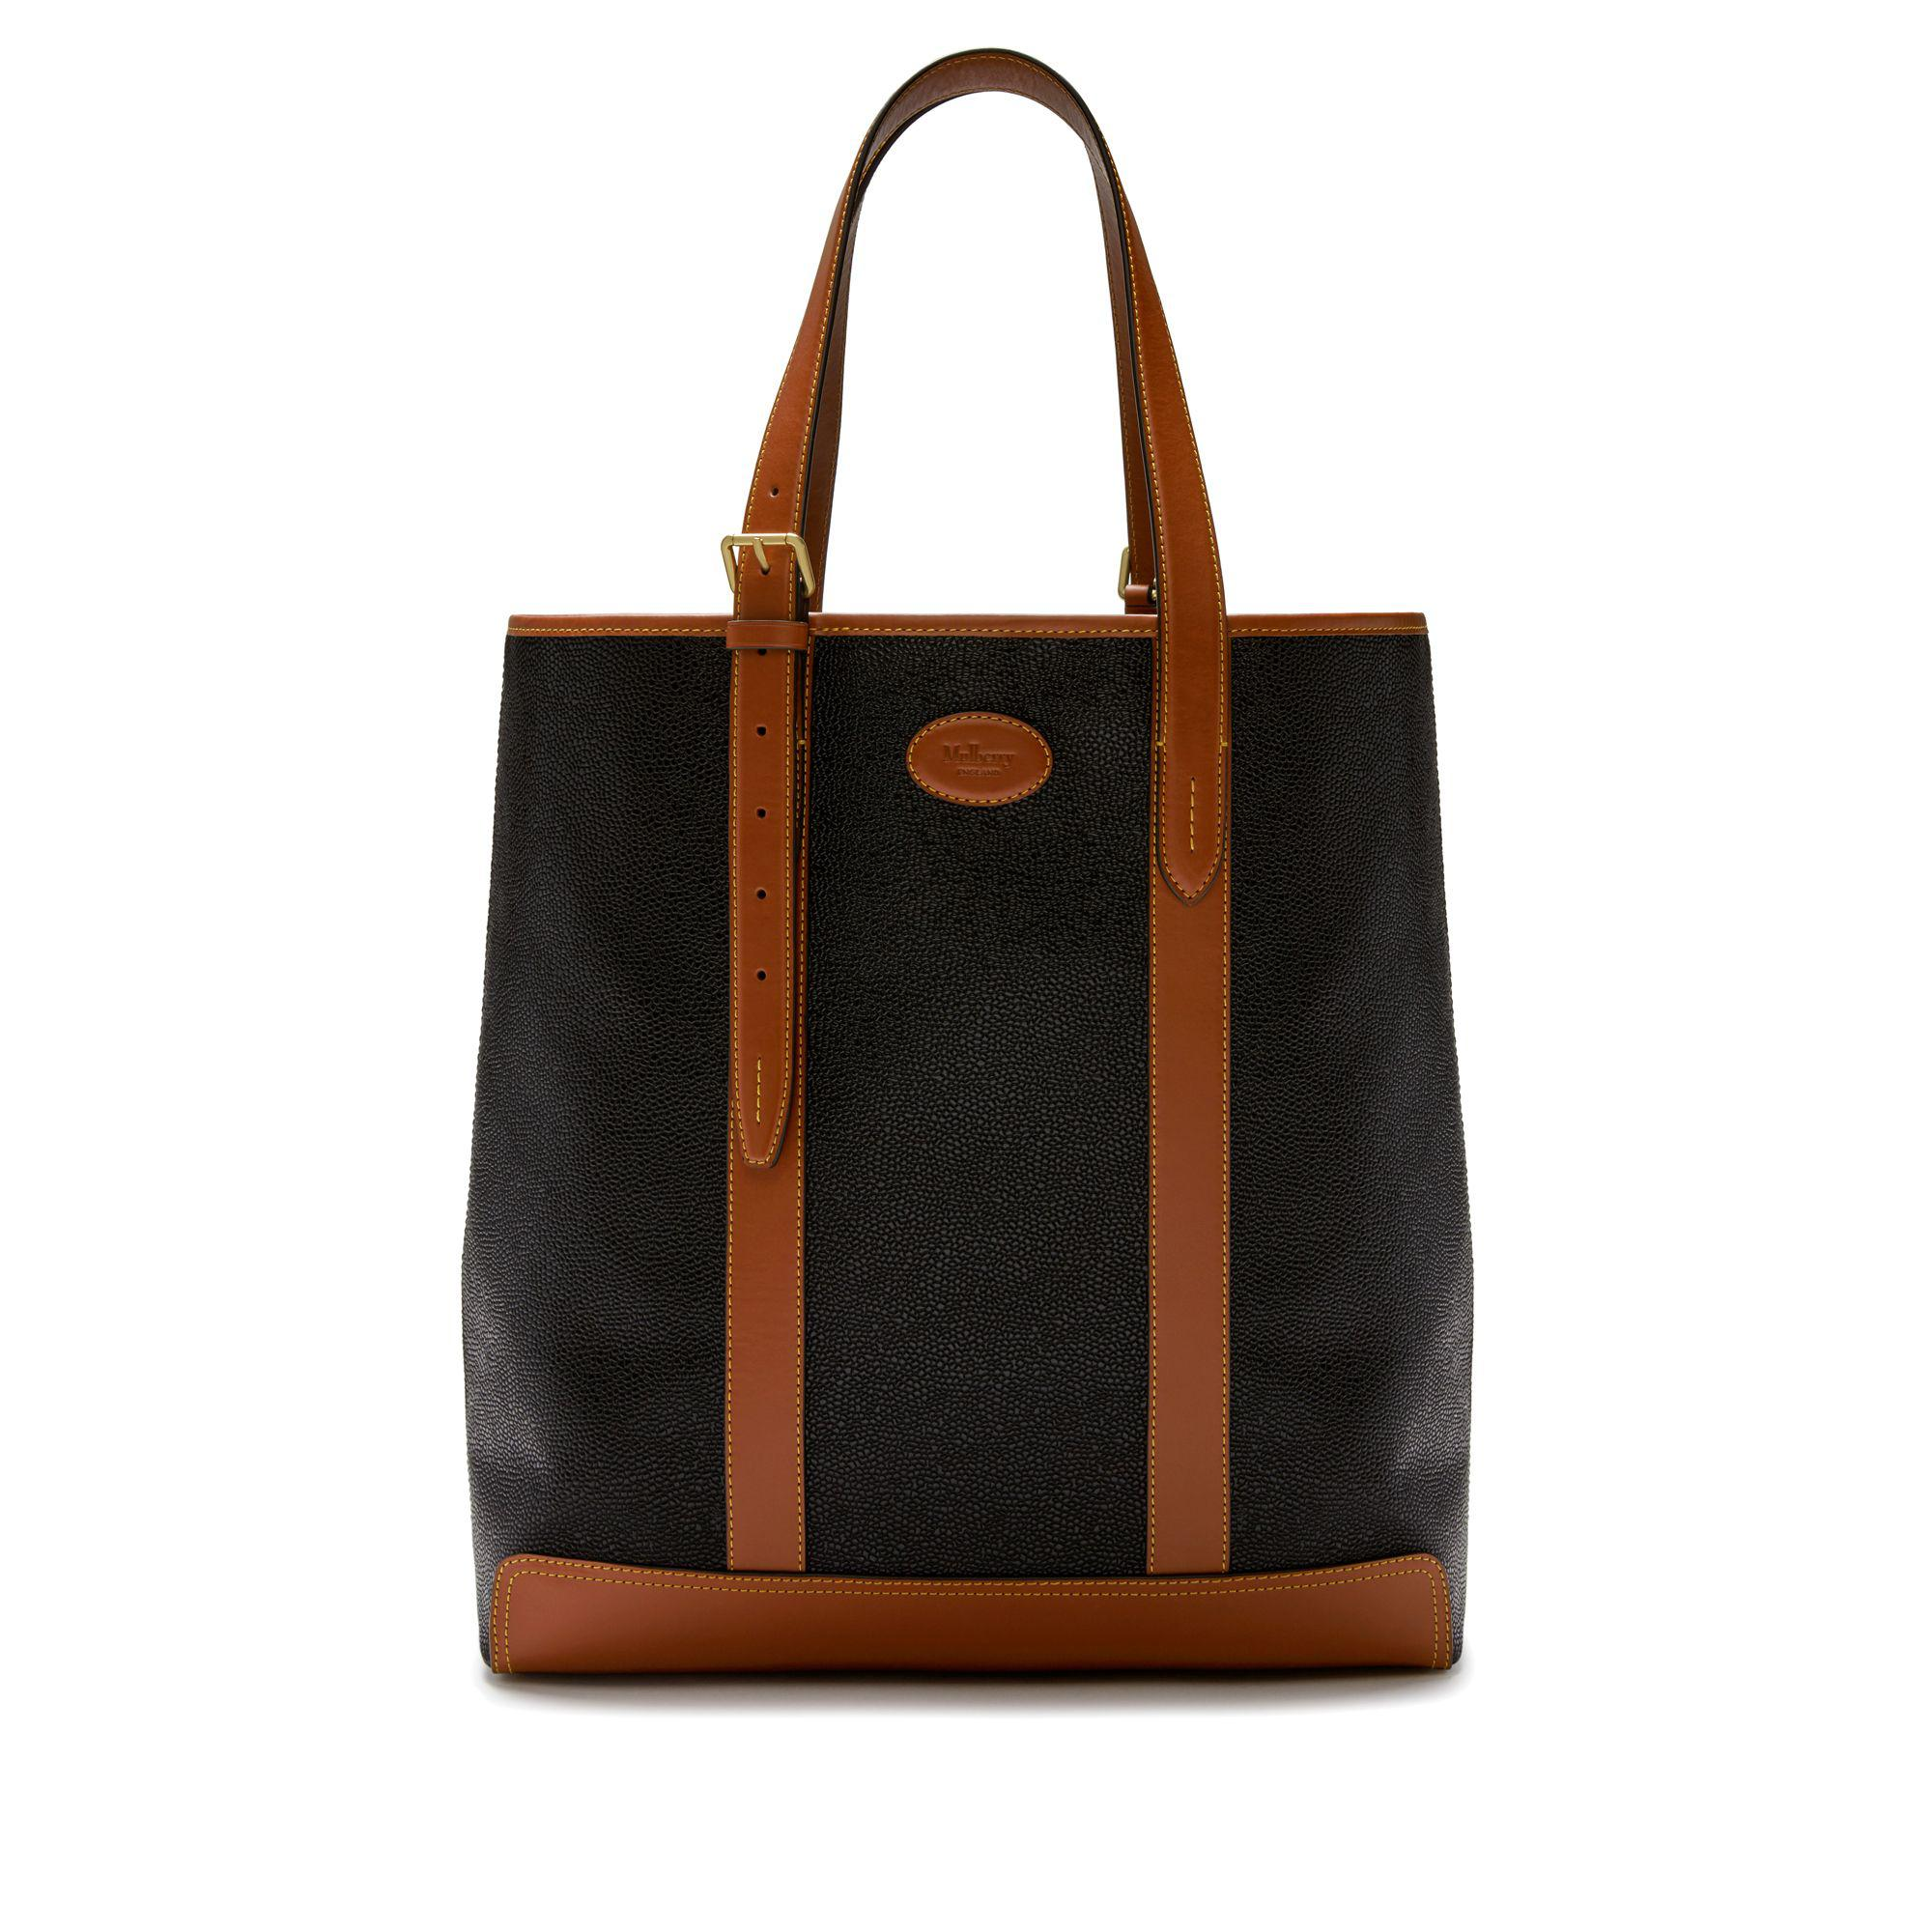 74d2f6aa1dd3 Lyst - Mulberry Heritage Tote In Black And Cognac Scotchgrain in ...